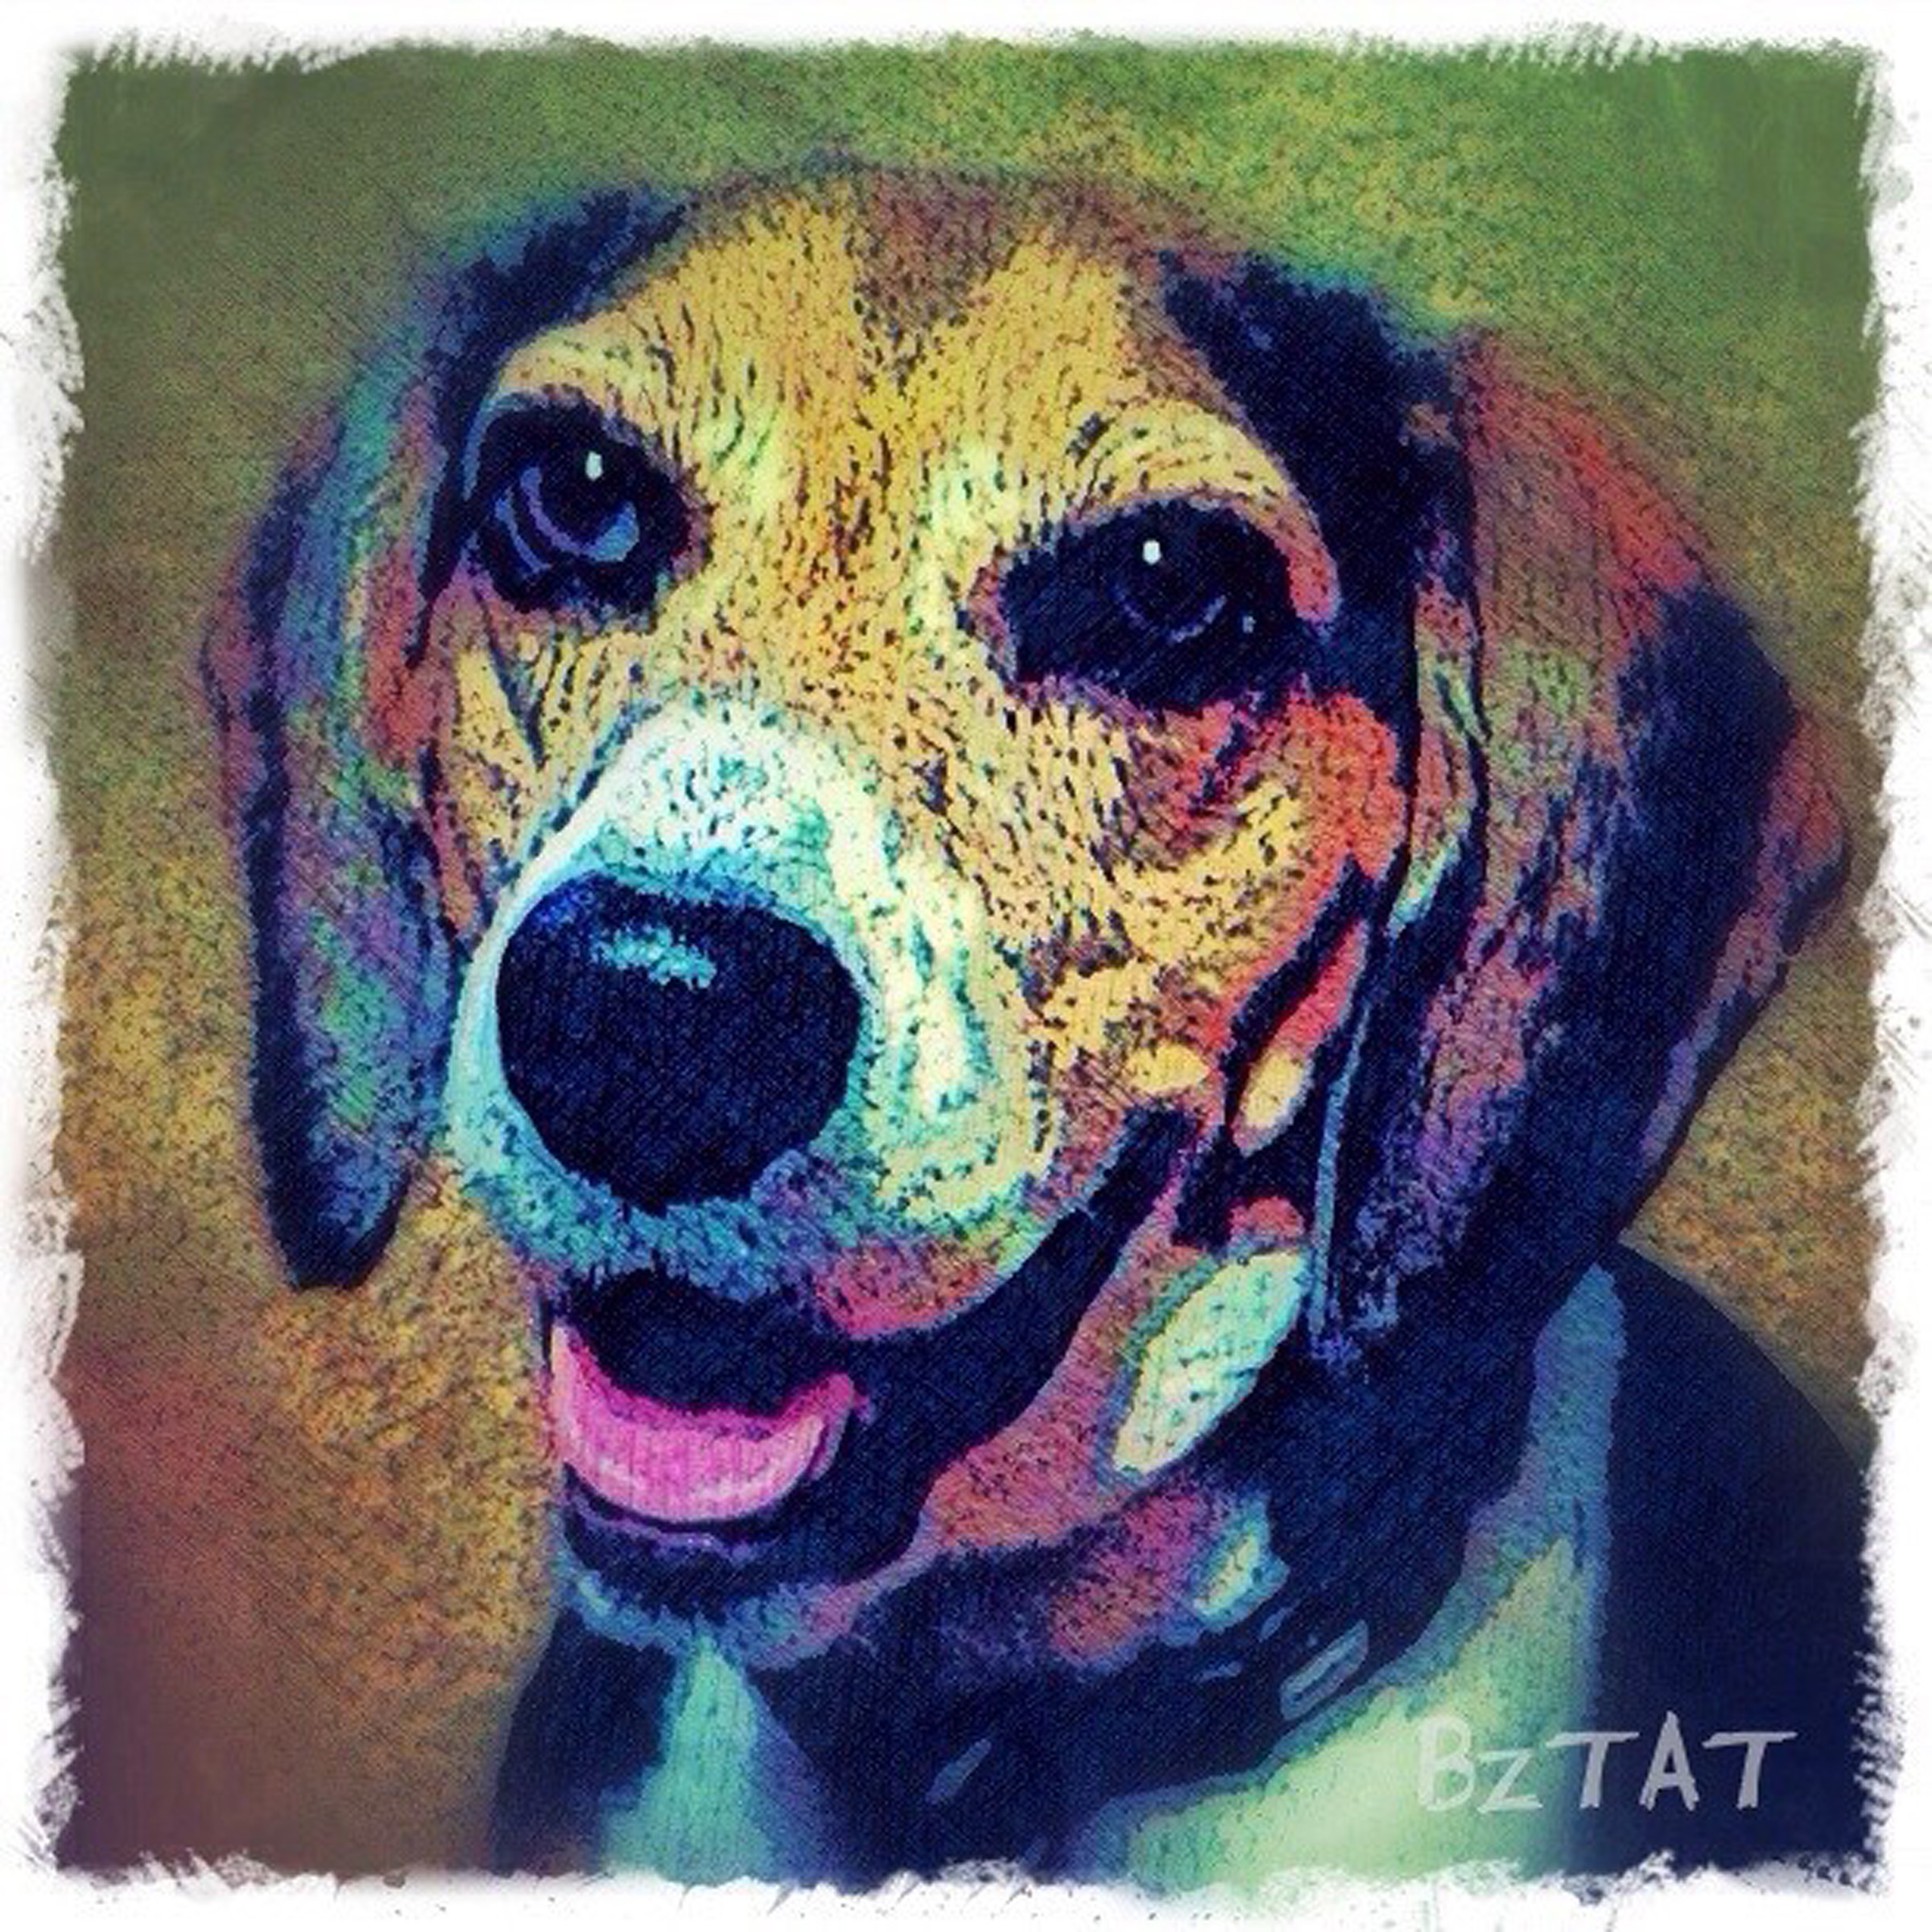 3-Digital-pet-portrait-dog-art-calendar-BZTAT